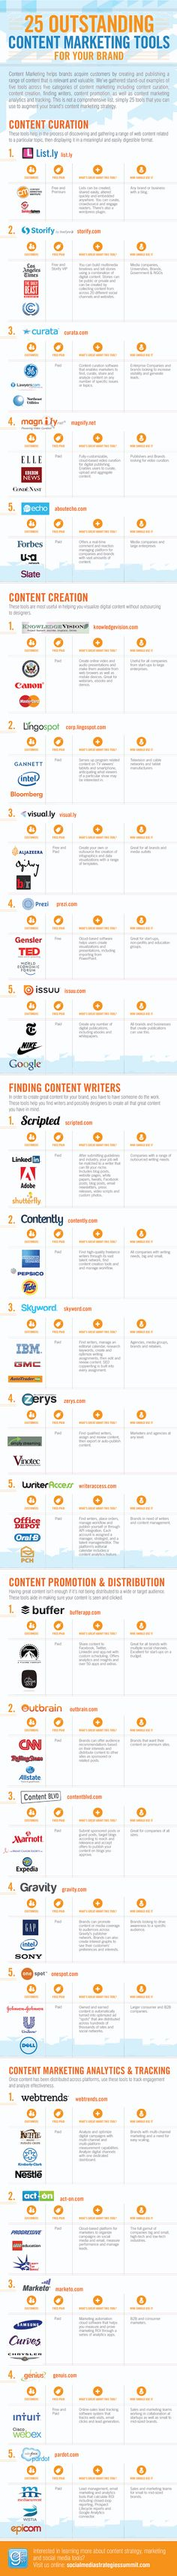 25 Excellent Content Marketing Tools for Your Brand (Infographic)